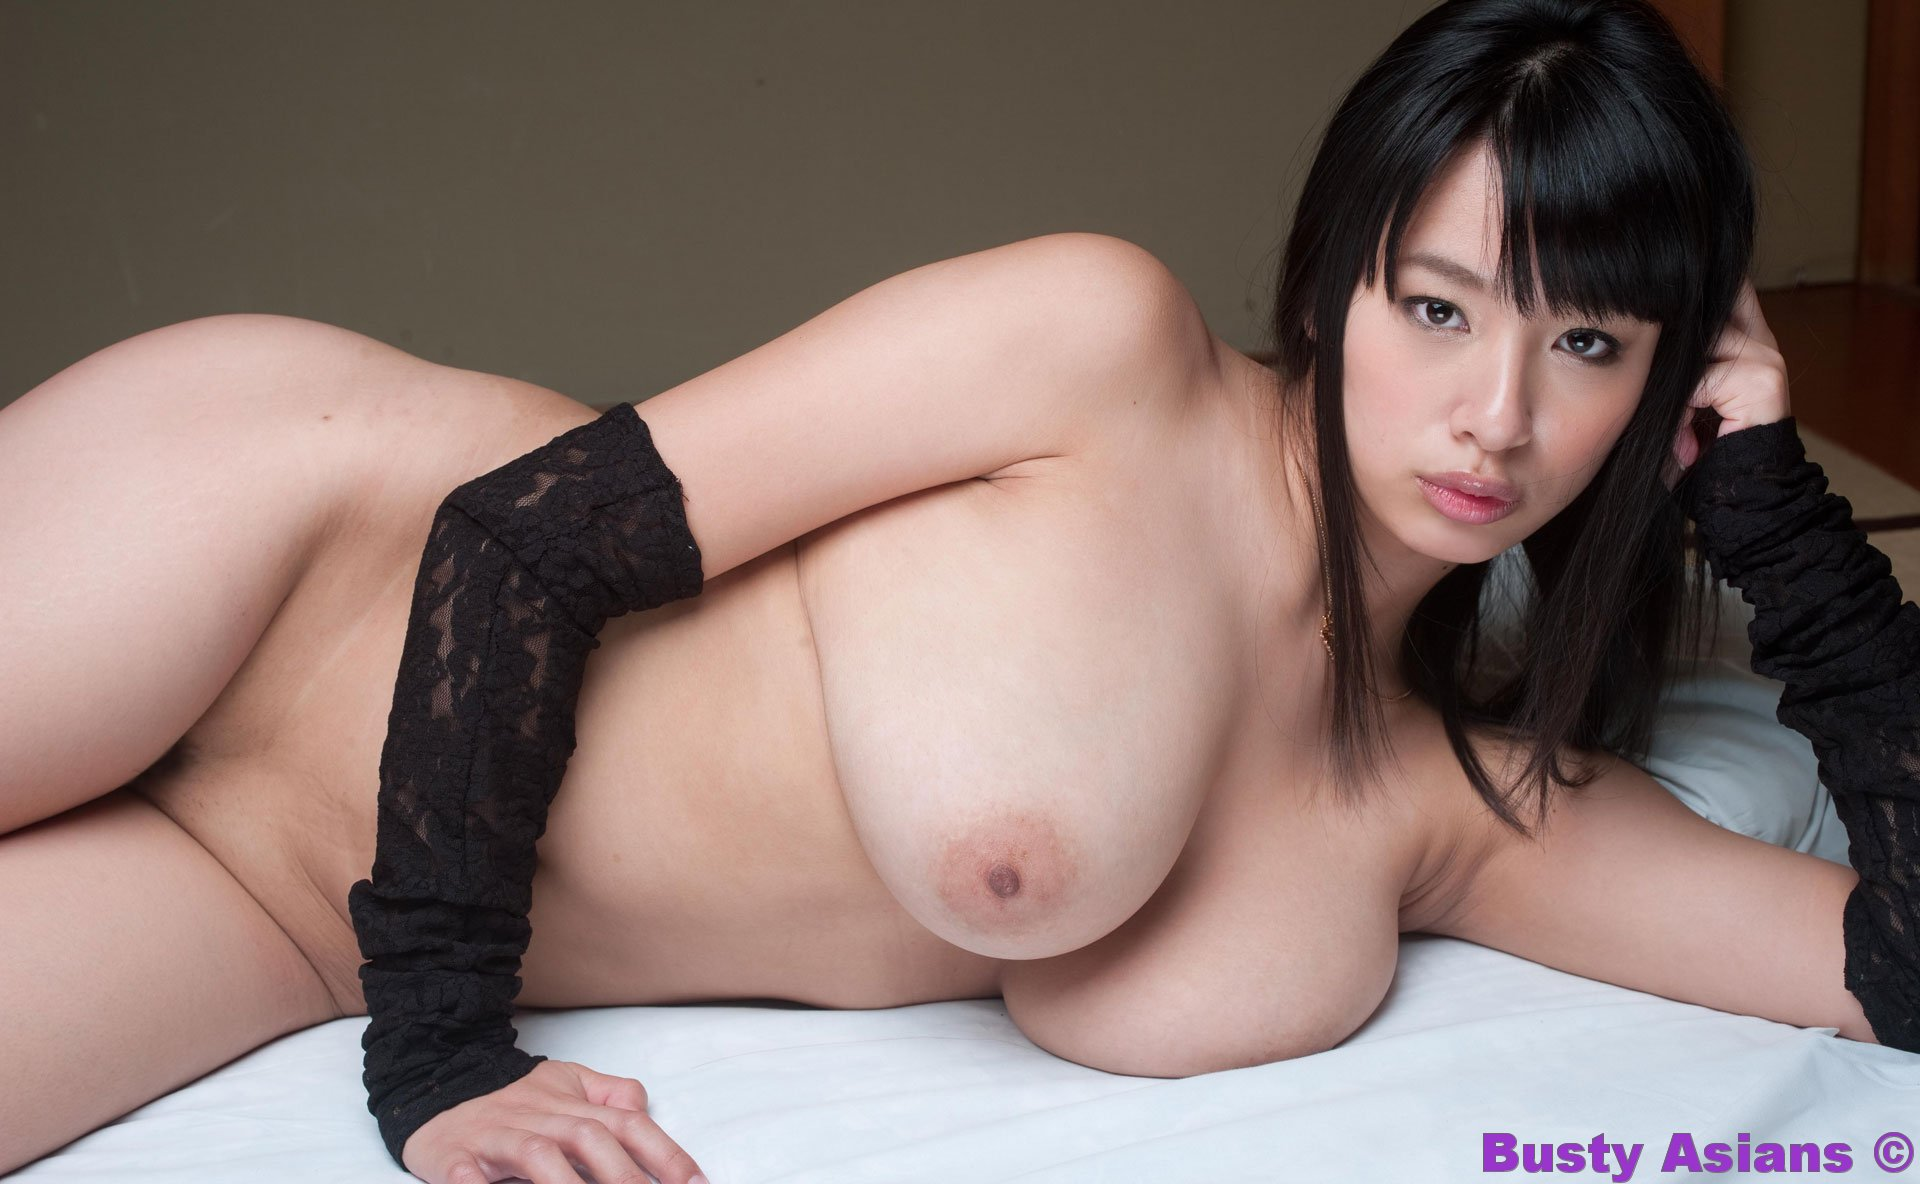 Real japanese porn stars